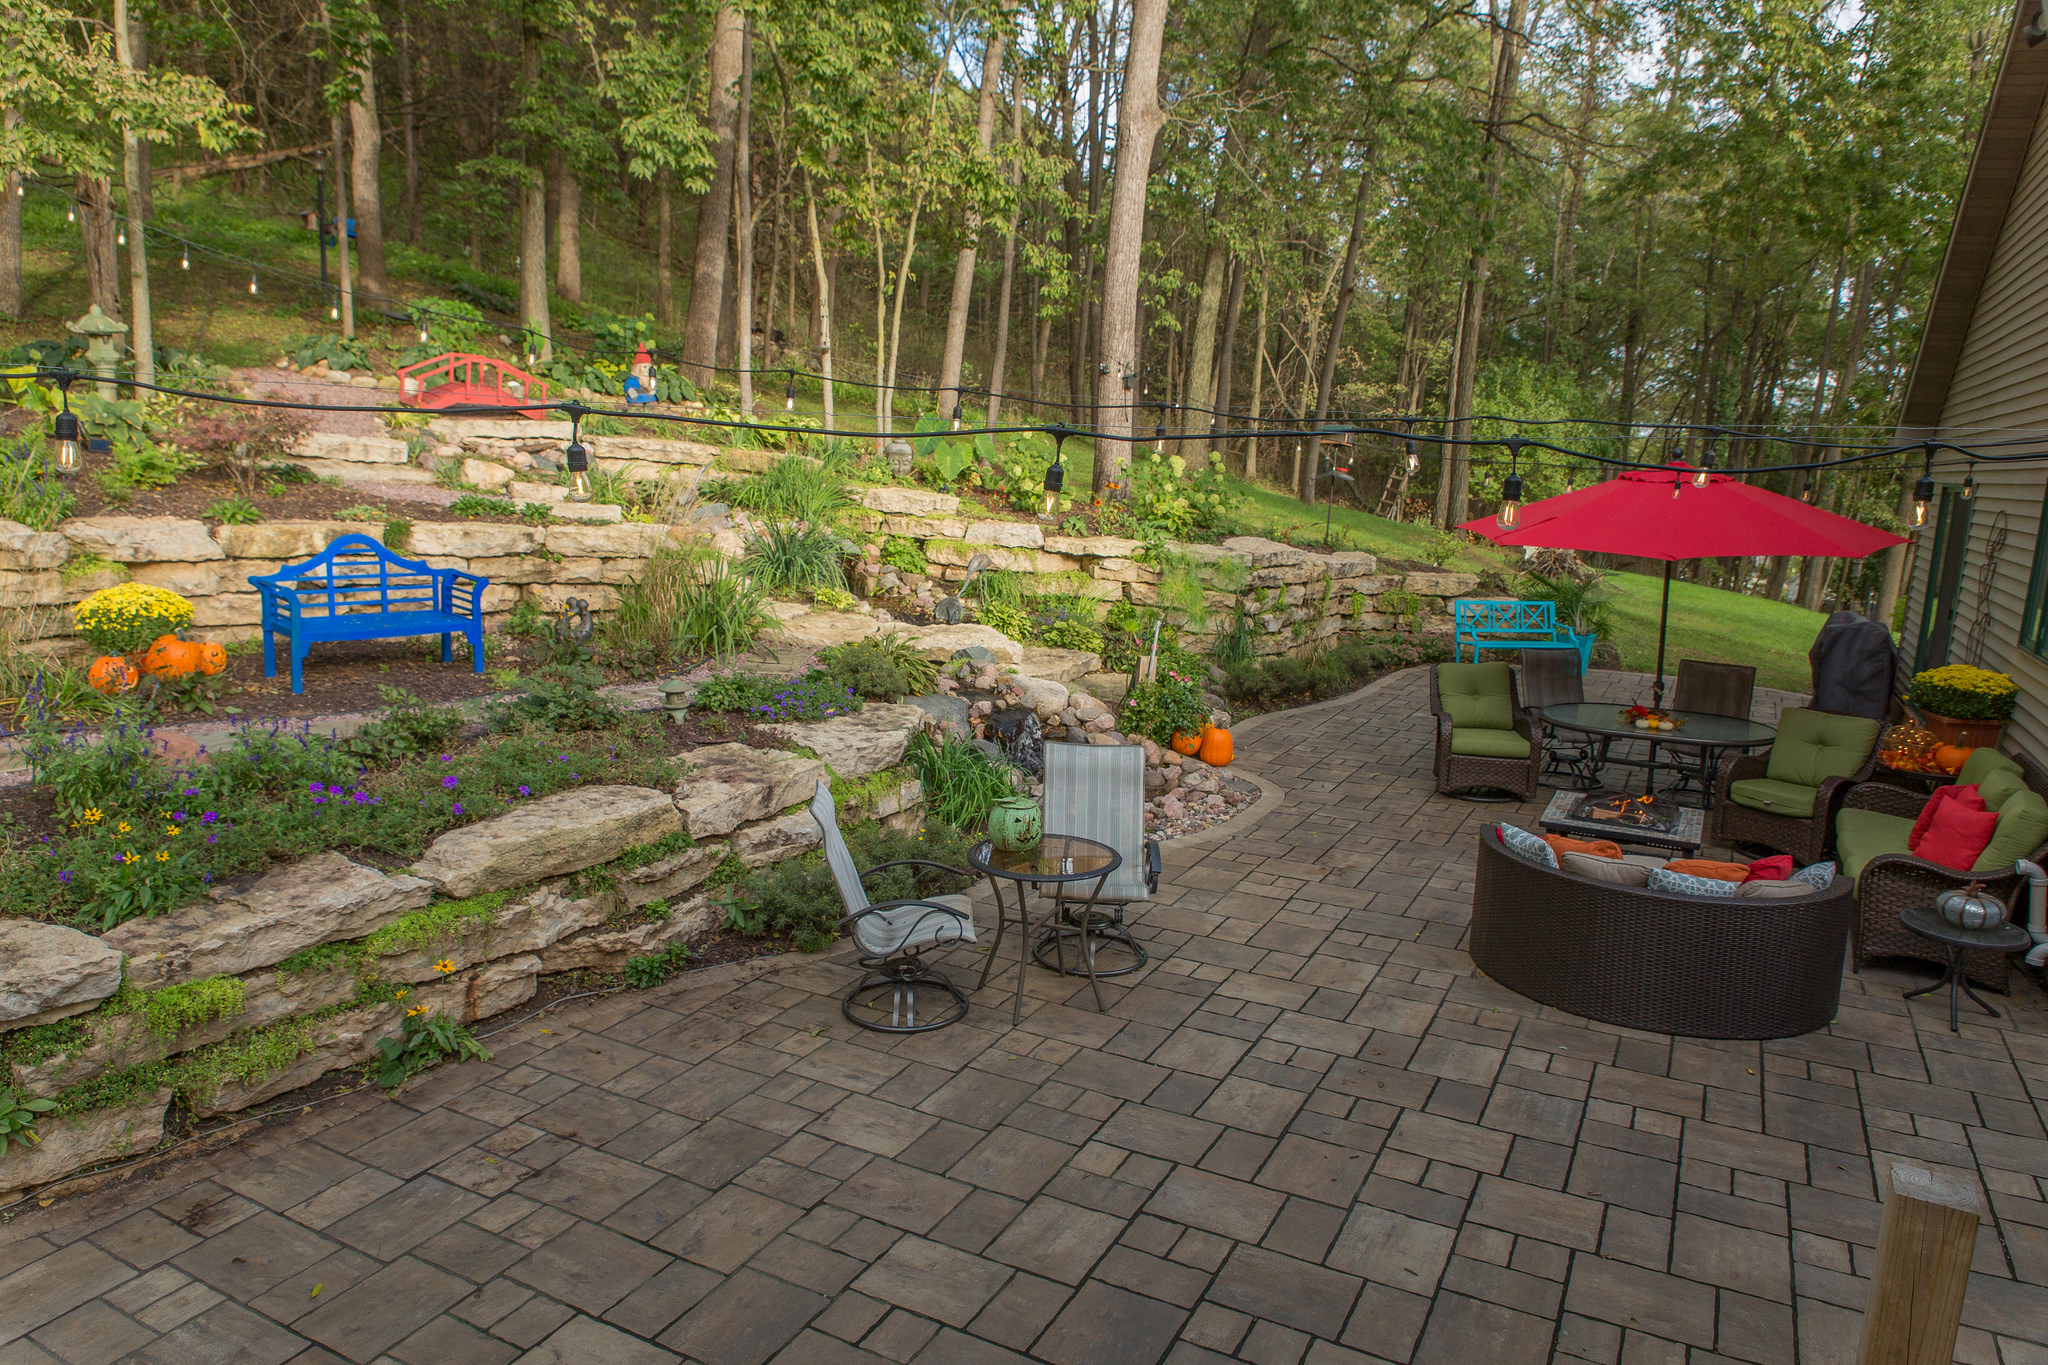 Waunakee, WI patio pavers by Unilock contractor